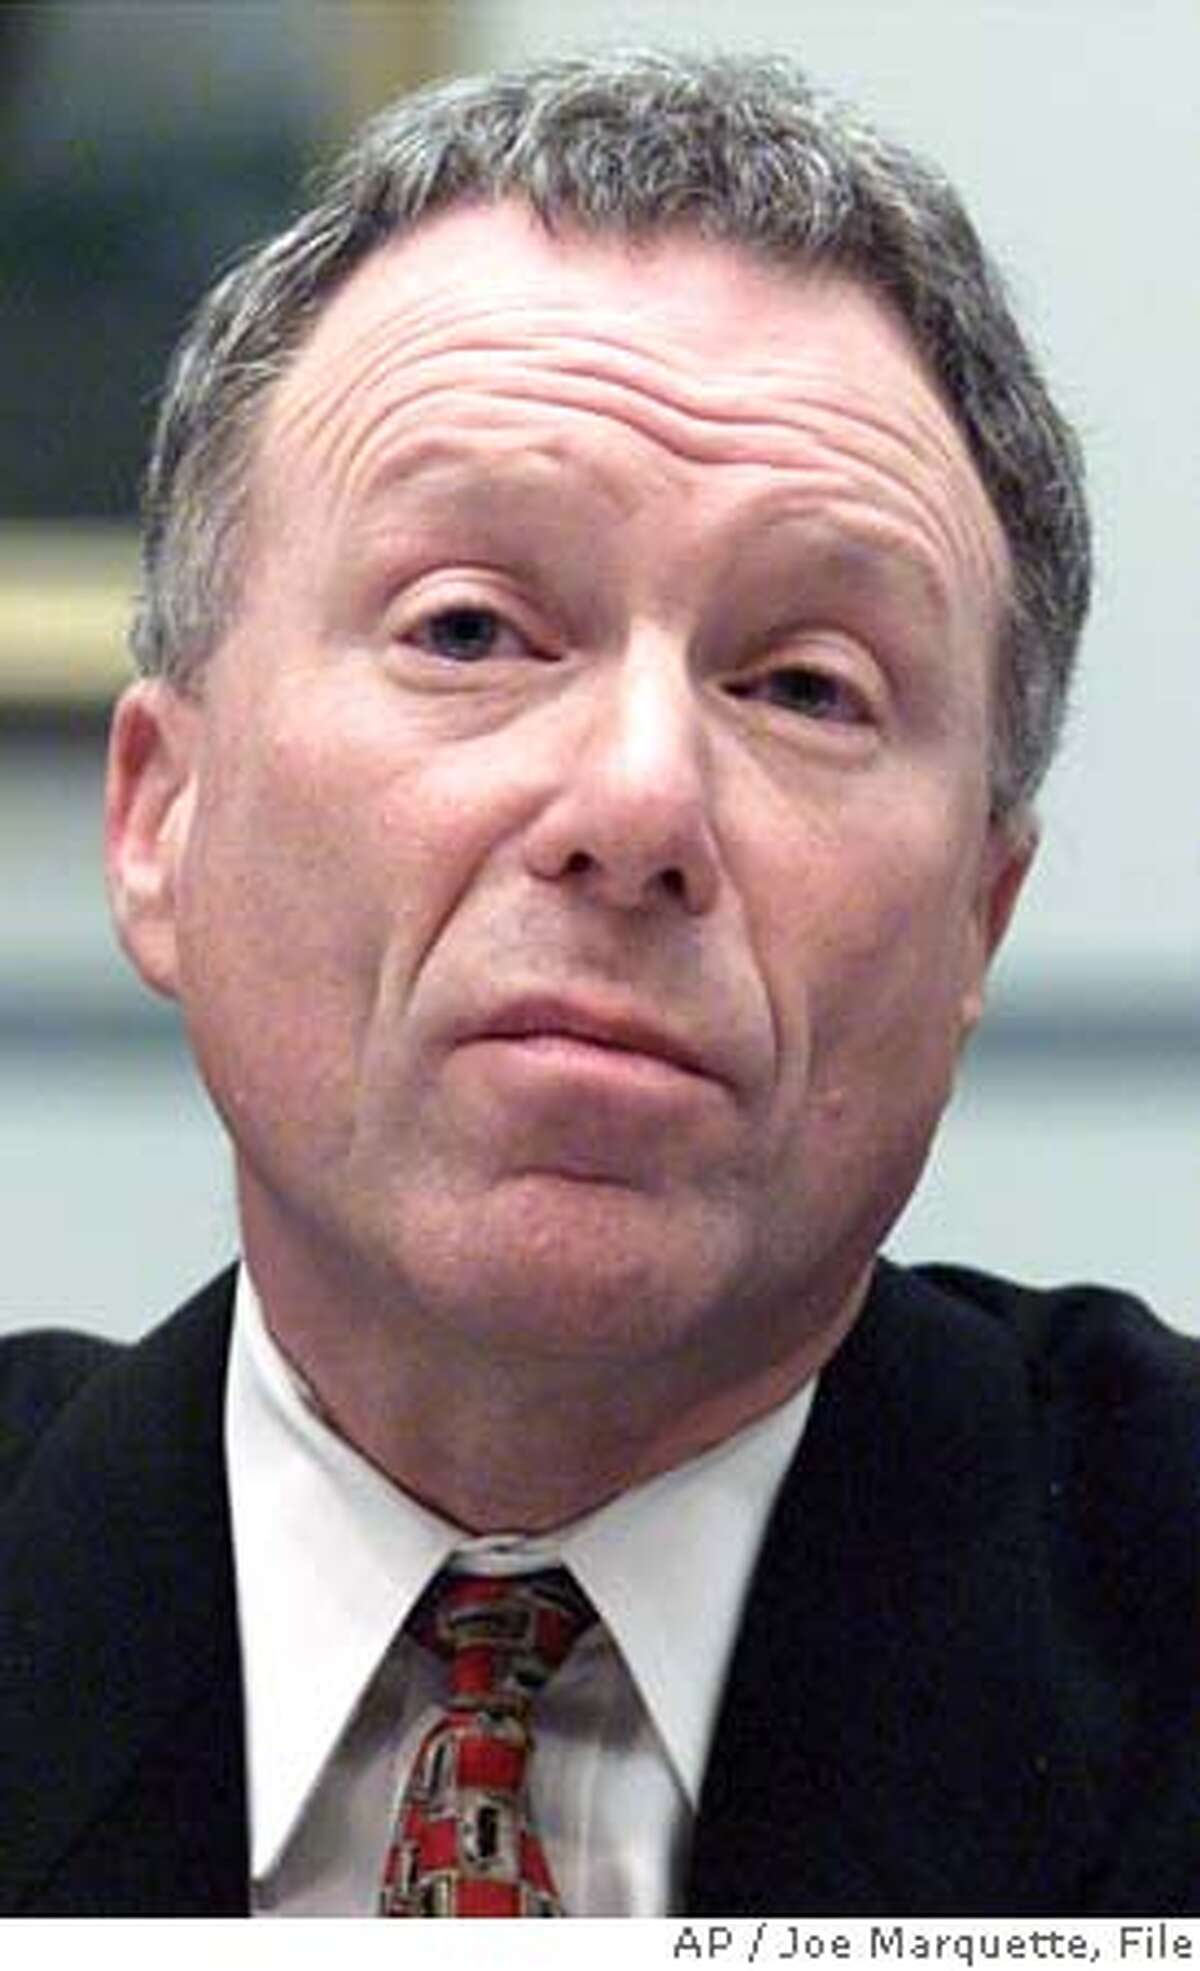 ** FILE ** Lewis Libby, Vice President Cheney's chief of staff, testifies on Capitol Hill in Washington in this March 1, 2001 file photo. (AP Photo/Joe Marquette, File) Ran on: 10-17-2005 Judith Miller Ran on: 10-17-2005 A MARCH 1, 2001 FILE PHOTO